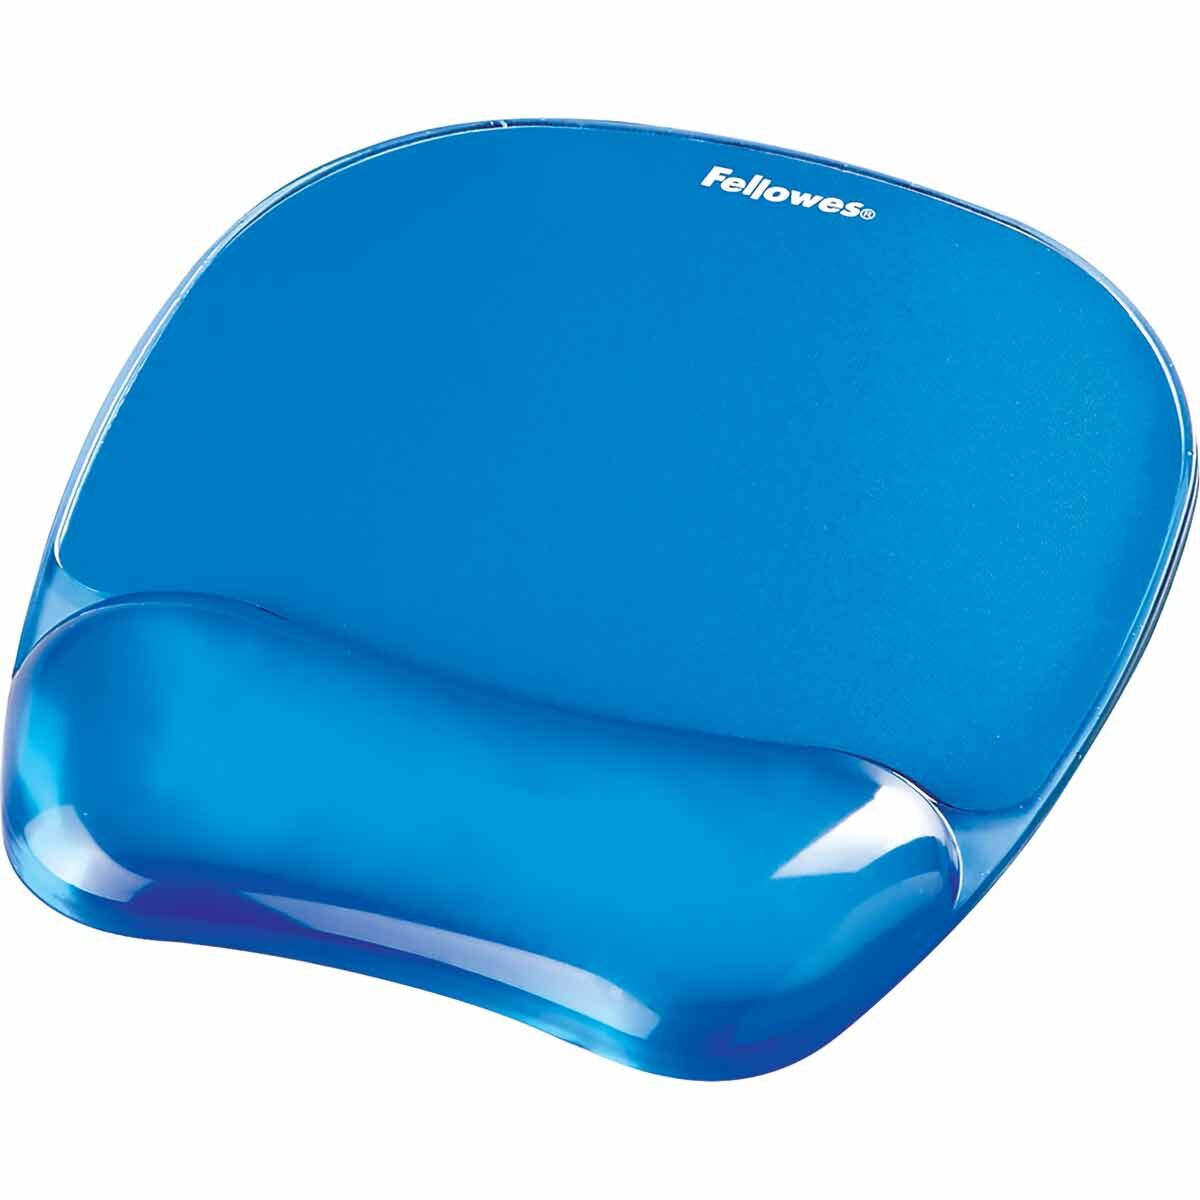 Fellowes Gel Mouse Pad with Wrist Support Blue